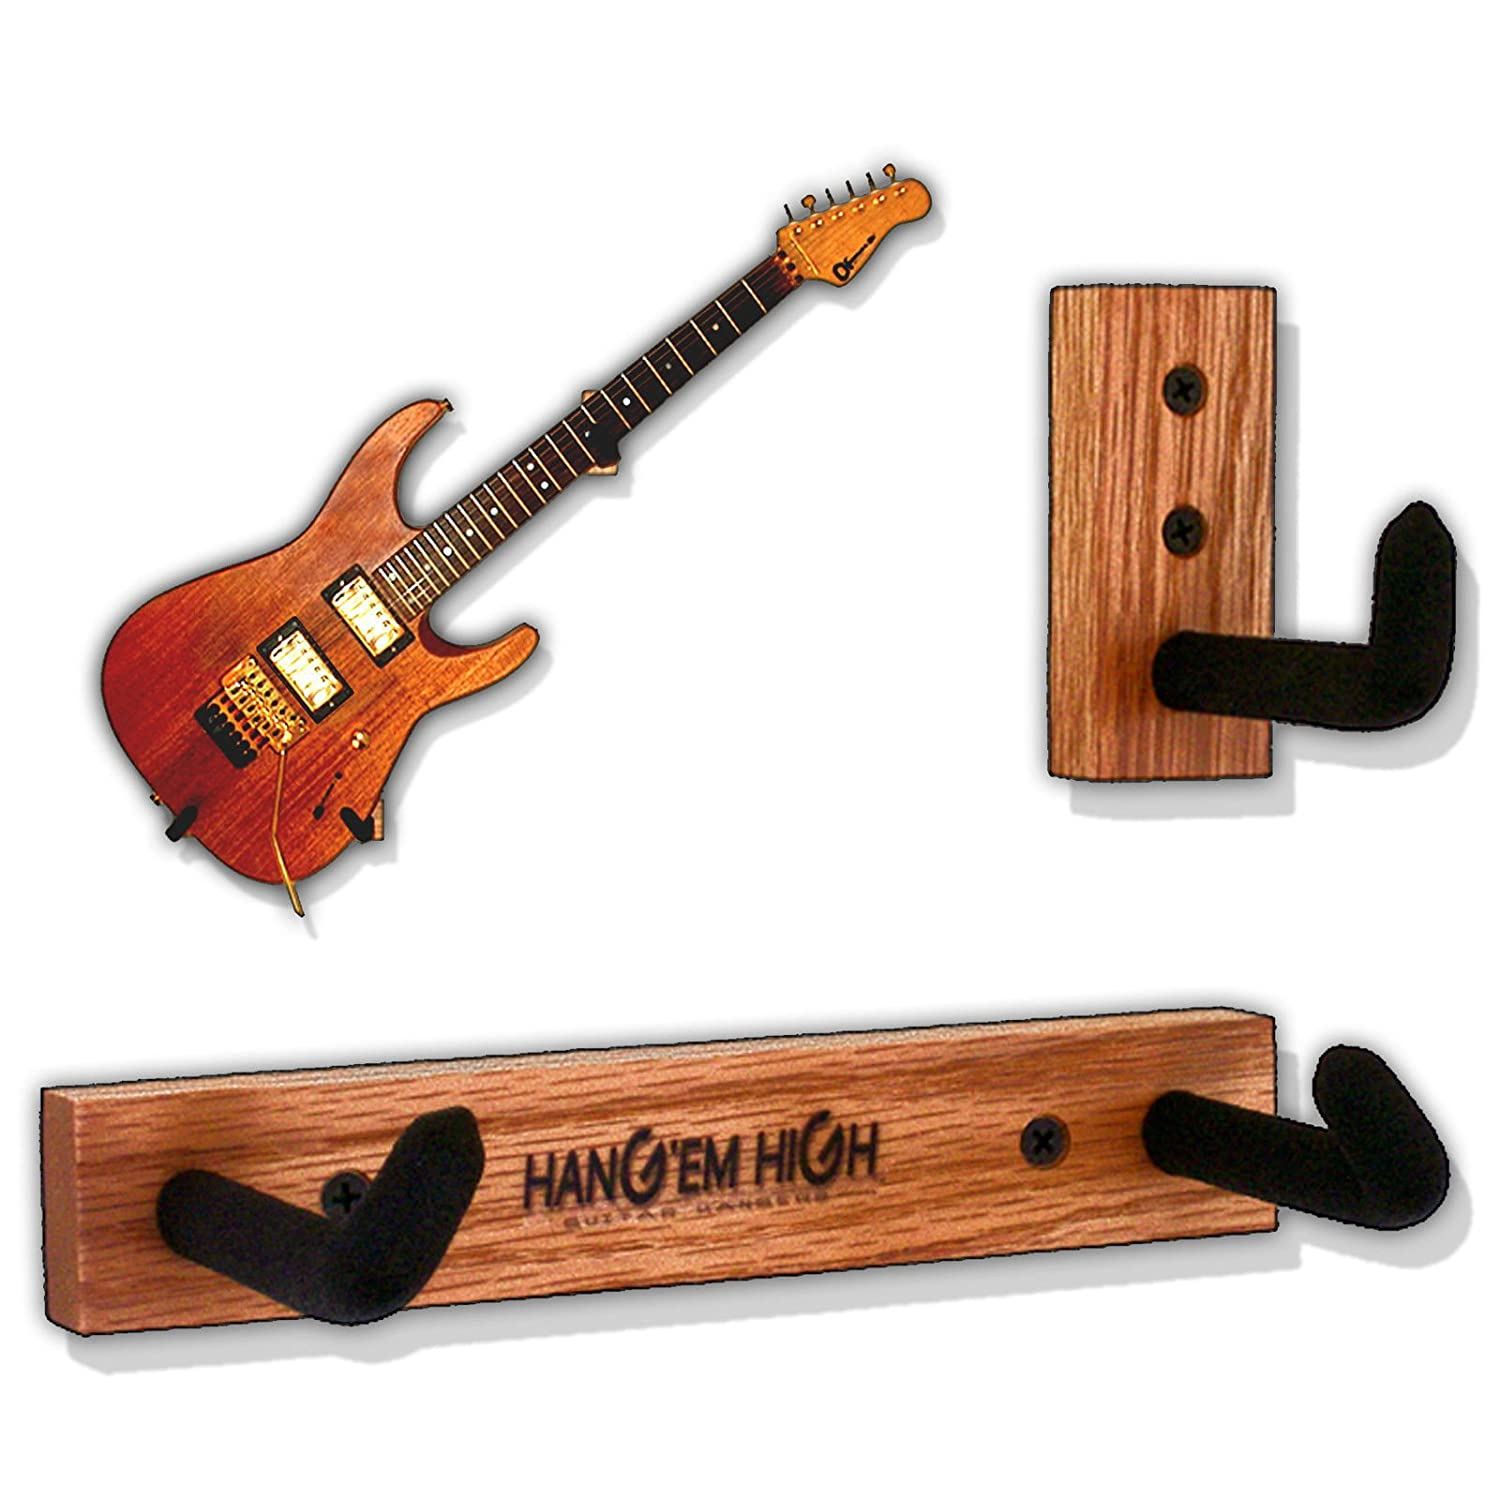 angled guitar wall hanger display for electric and